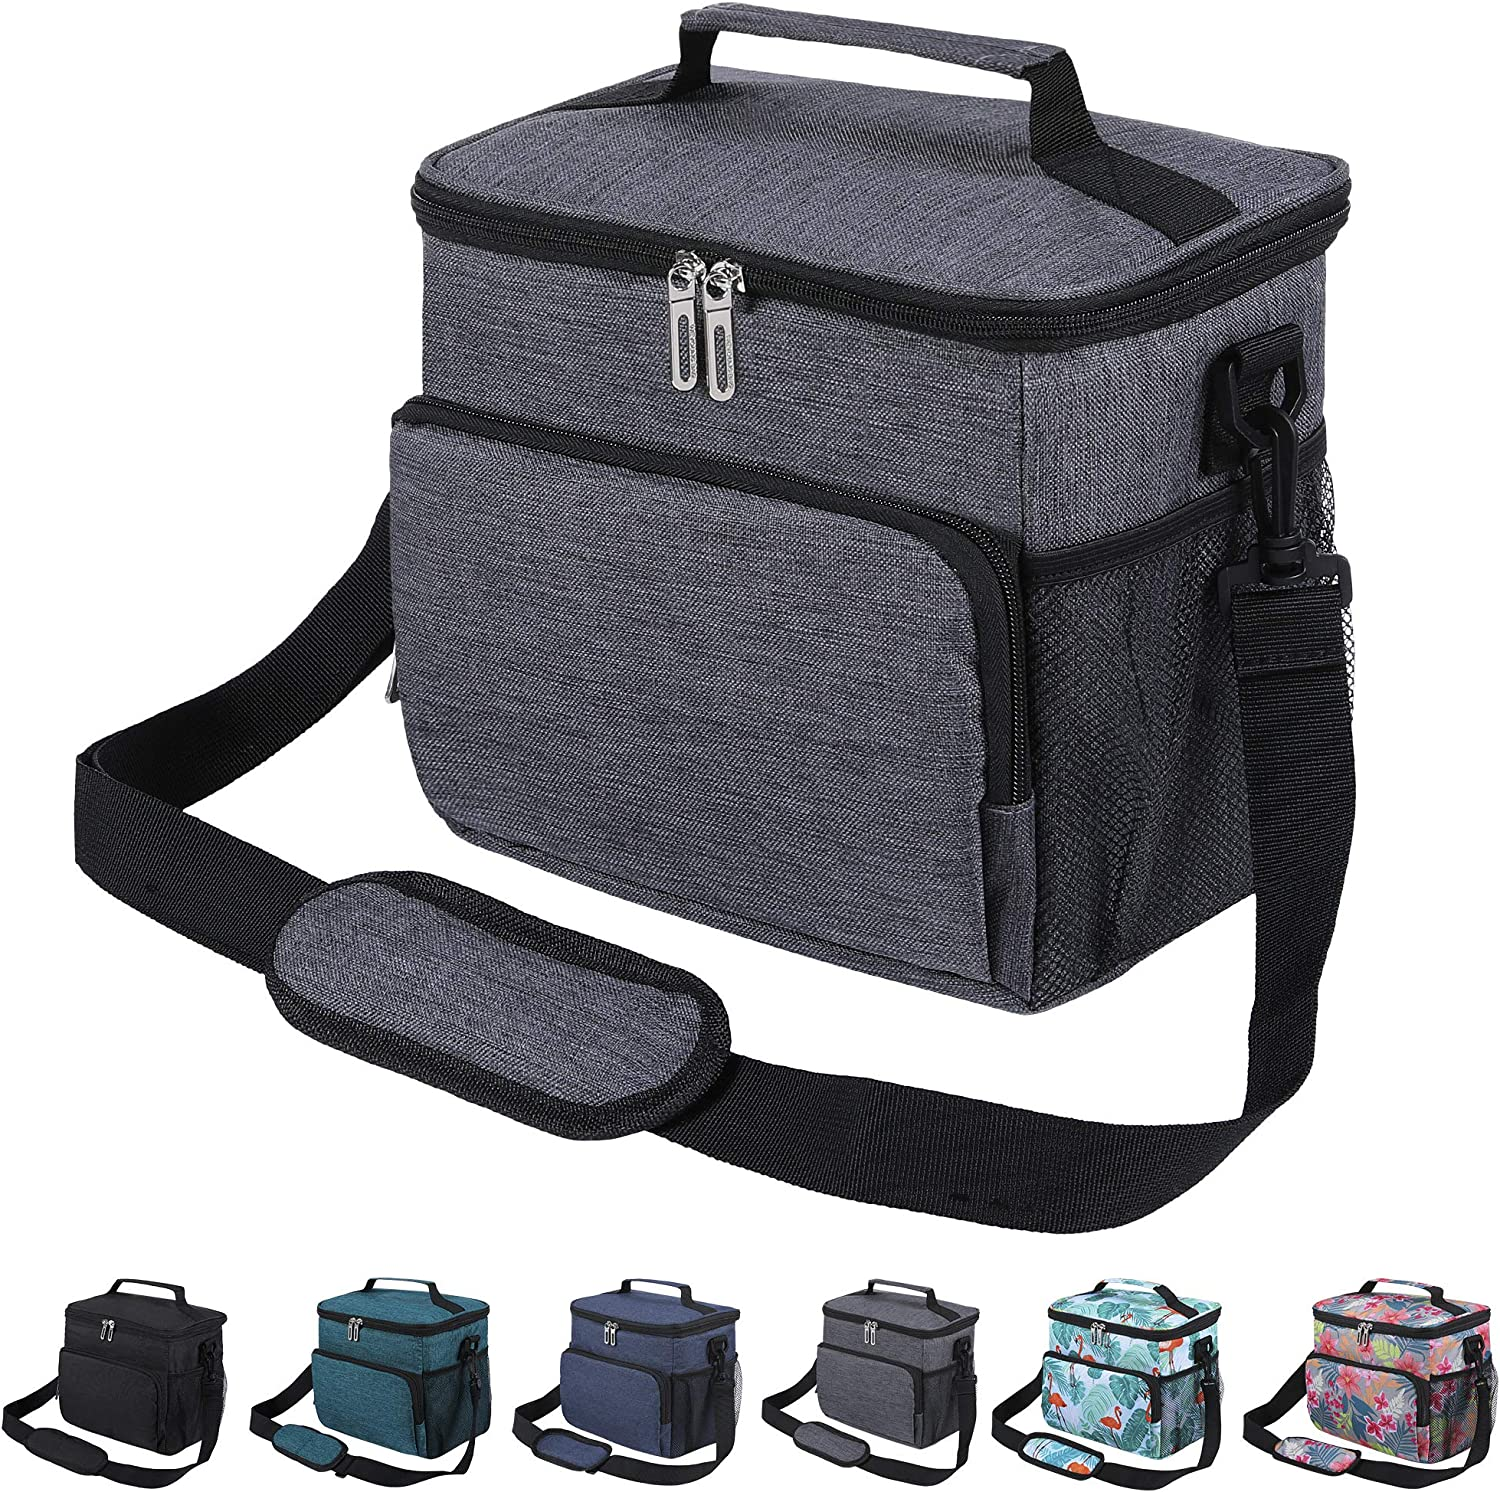 Insulated Lunch Bag for Women Men Adult, Leakproof Lunch Box for Office Work School Cooler Tote Bag with Adjustable Shoulder Strap for Kids, Dark Gray